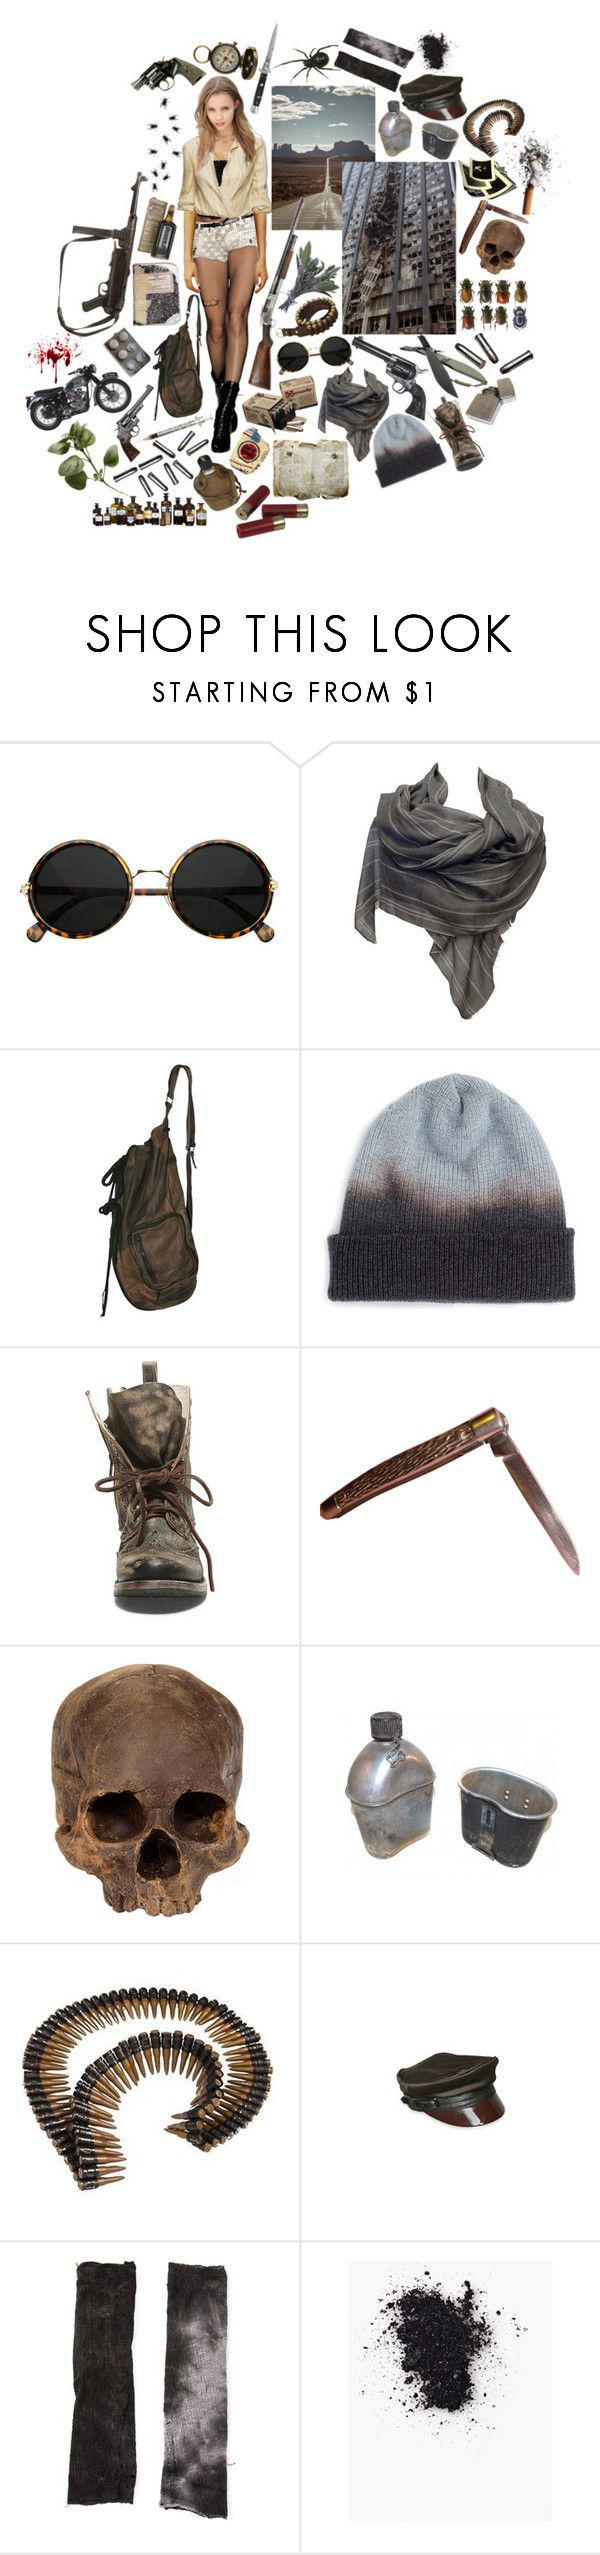 """After the End"" by yulemoon ❤ liked on Polyvore featuring Tokyo Rose, Denis Colomb, Plane, Smith & Wesson, INC International Concepts, Triumph, Revolver, Steve Madden, Tissu Tiré and Switchblade Stiletto"